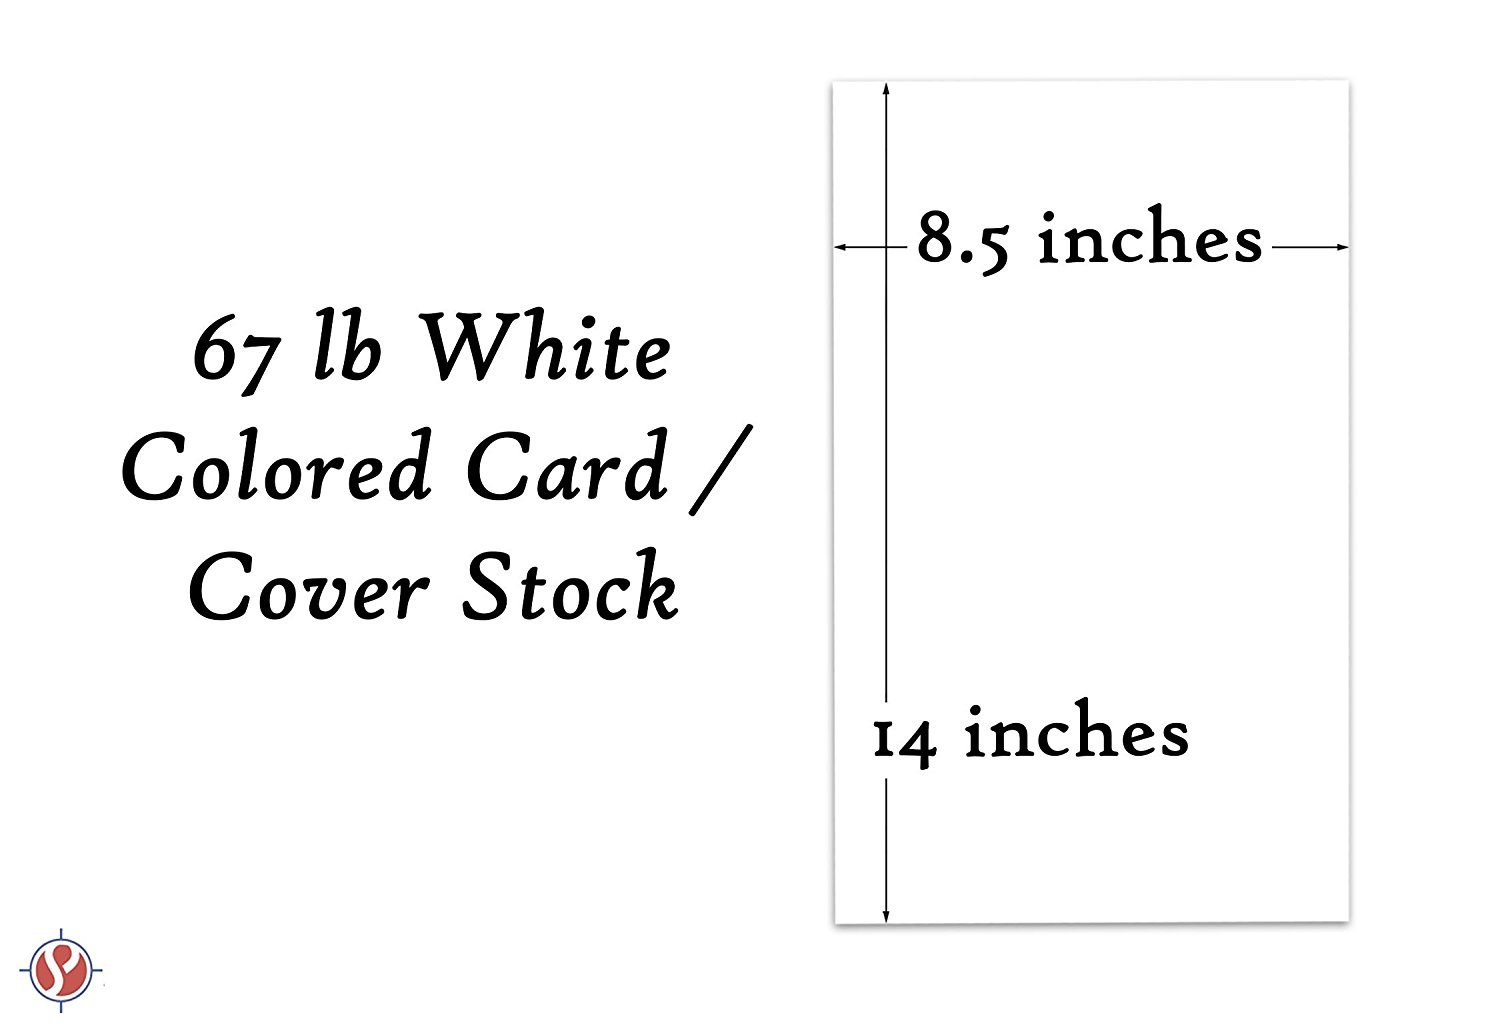 1 Case of 1000 Sheets, 8.5'' x 14'' Legal Size Card Stock Paper, 67Lb Vellum Bristol Pastel Color Cardstock | Perfect for School and Craft Projects | White